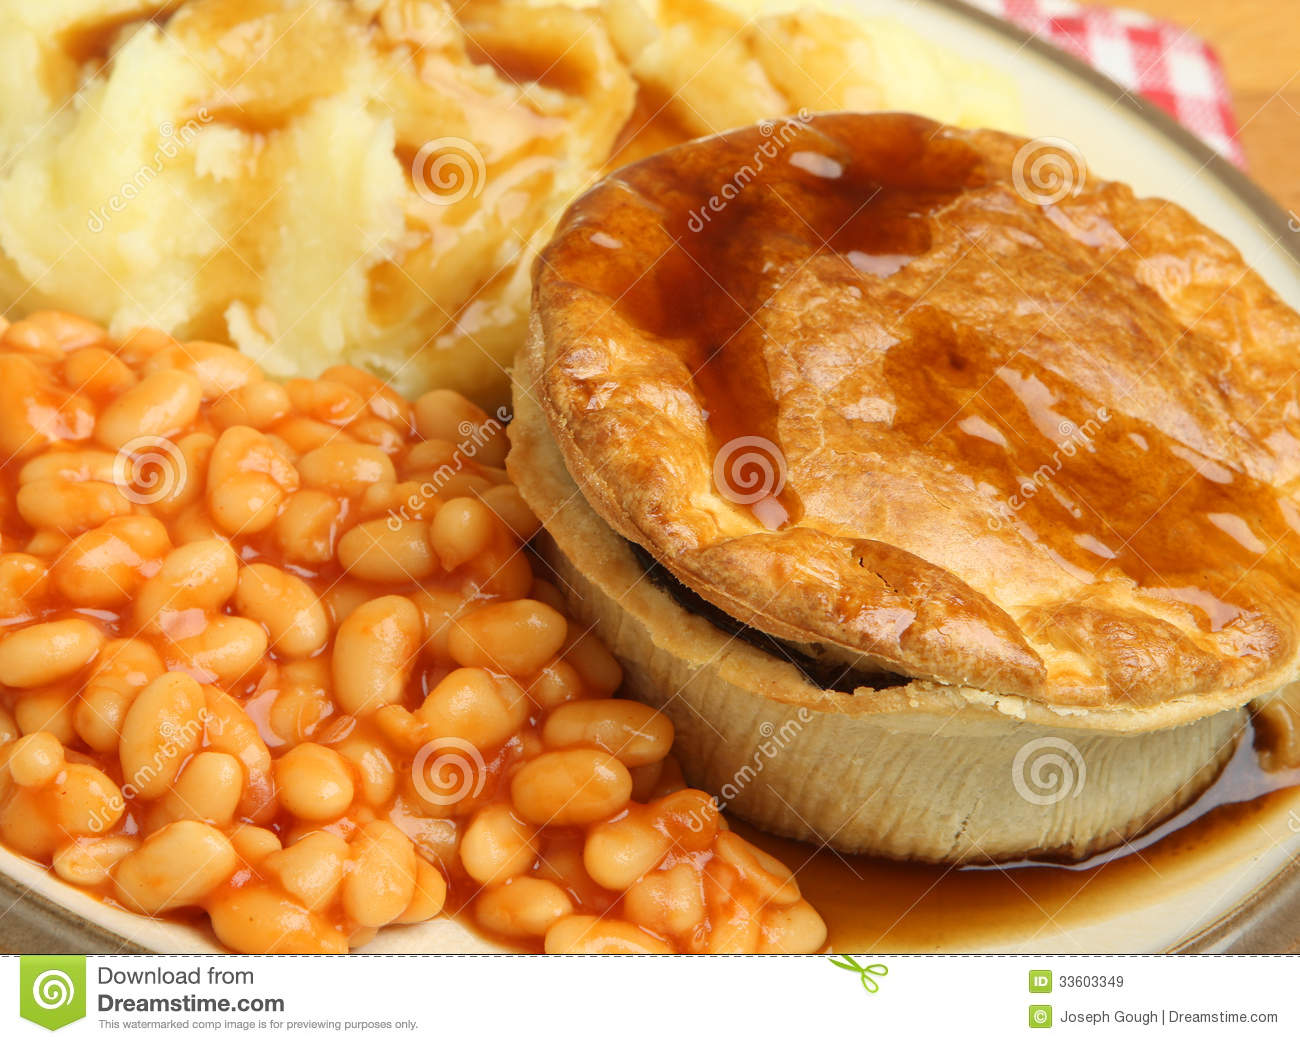 Steak Pie With Mash And Baked Beans Stock Image - Image of ...